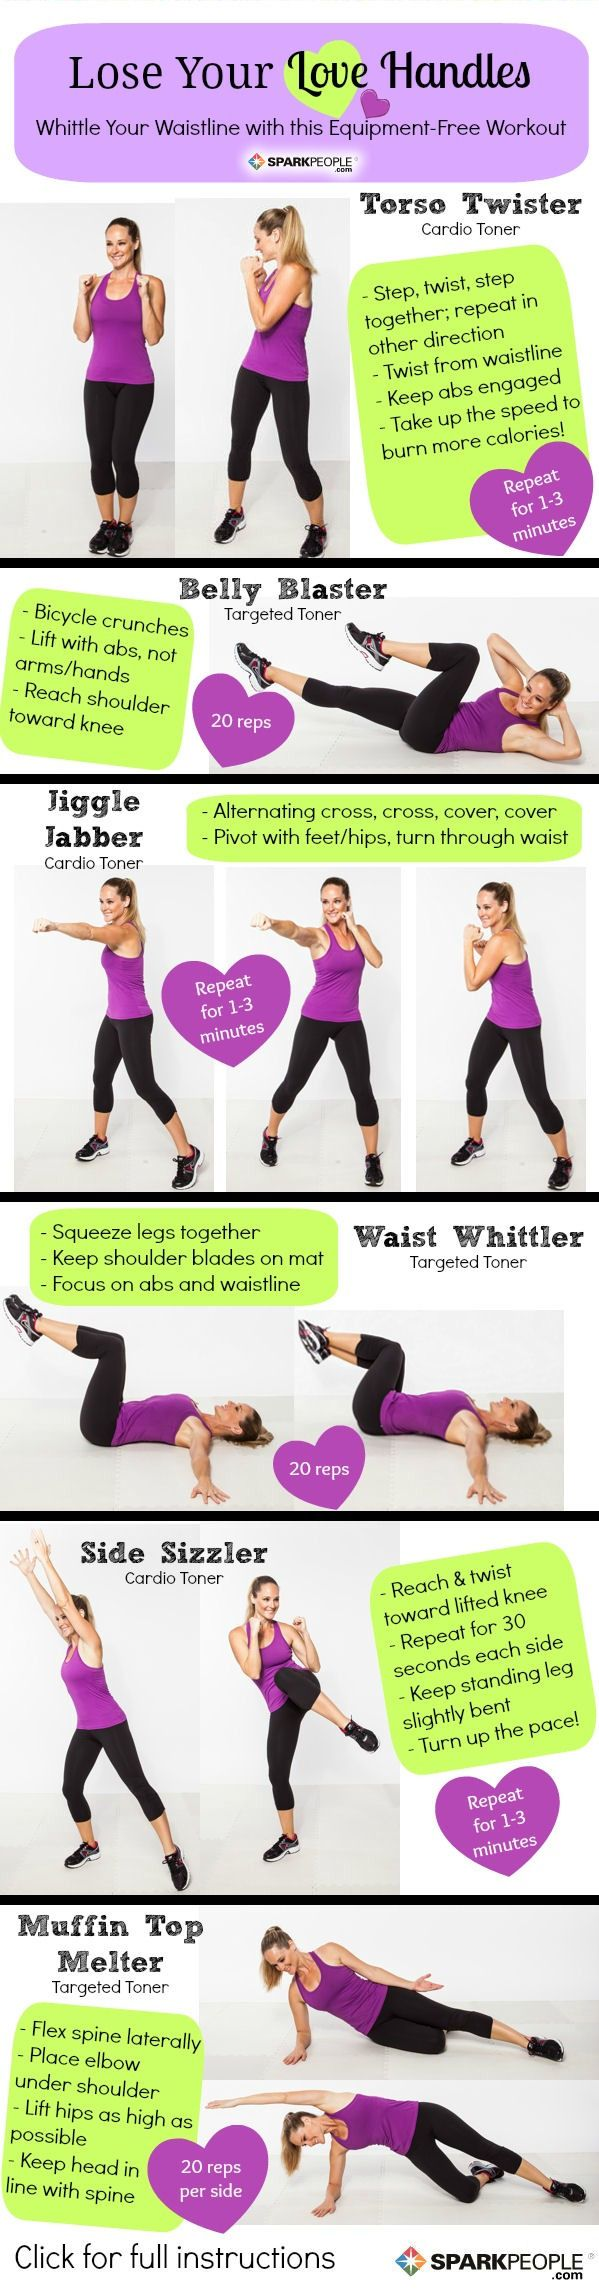 Melt your muffin top!  Love how it shows all the moves on this screen shot!